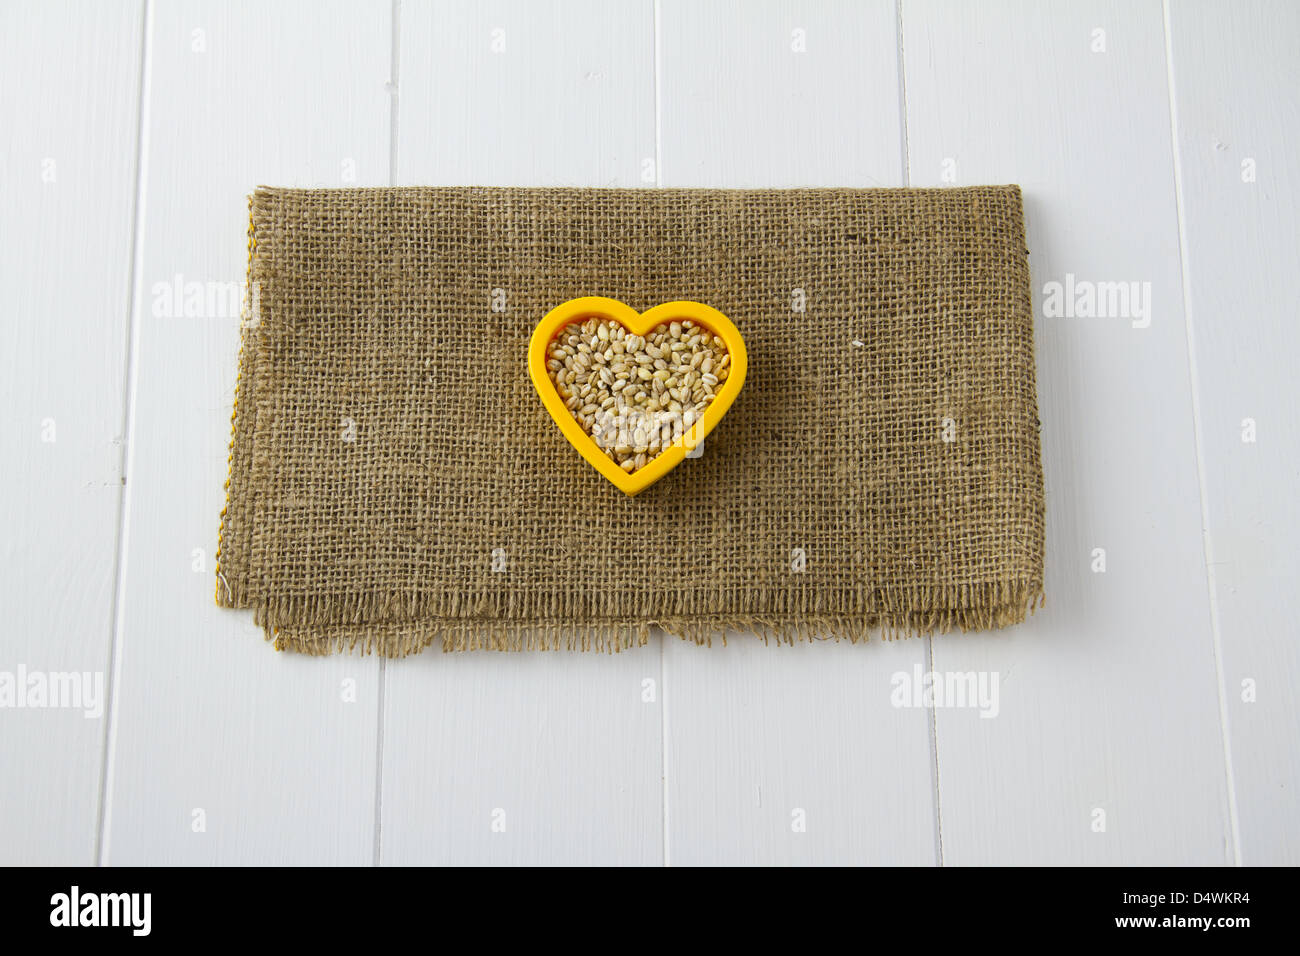 Raw pearl barley nestled in a heart, sitting on burlap and white wooden boards - Stock Image